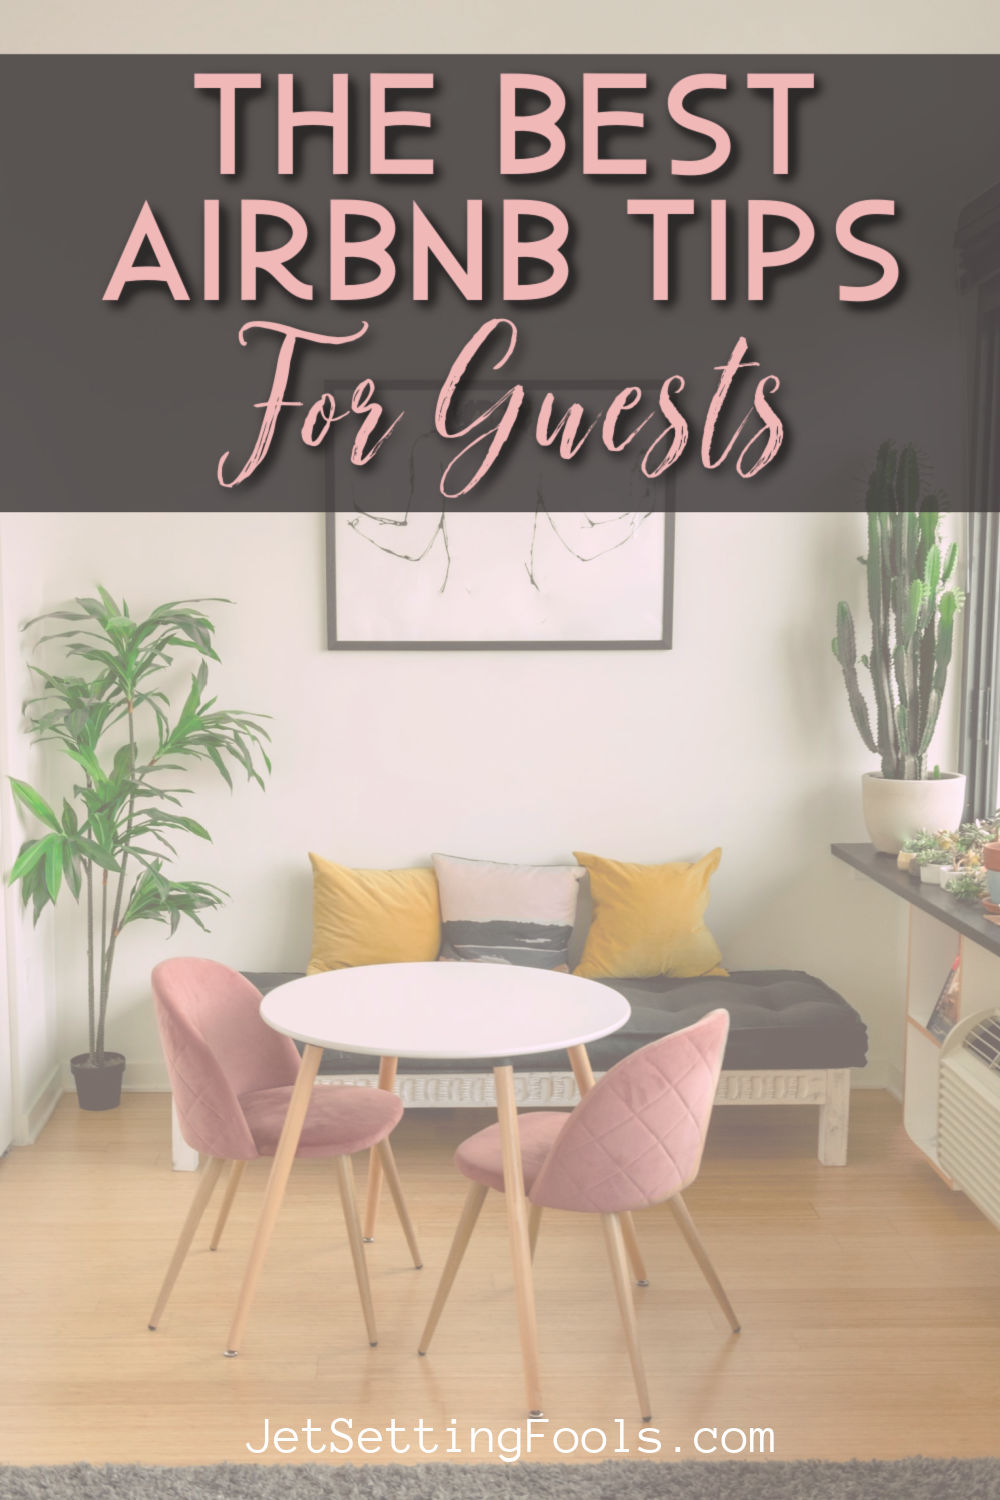 The Best Airbnb Tips for Guests by JetSettingFools.com